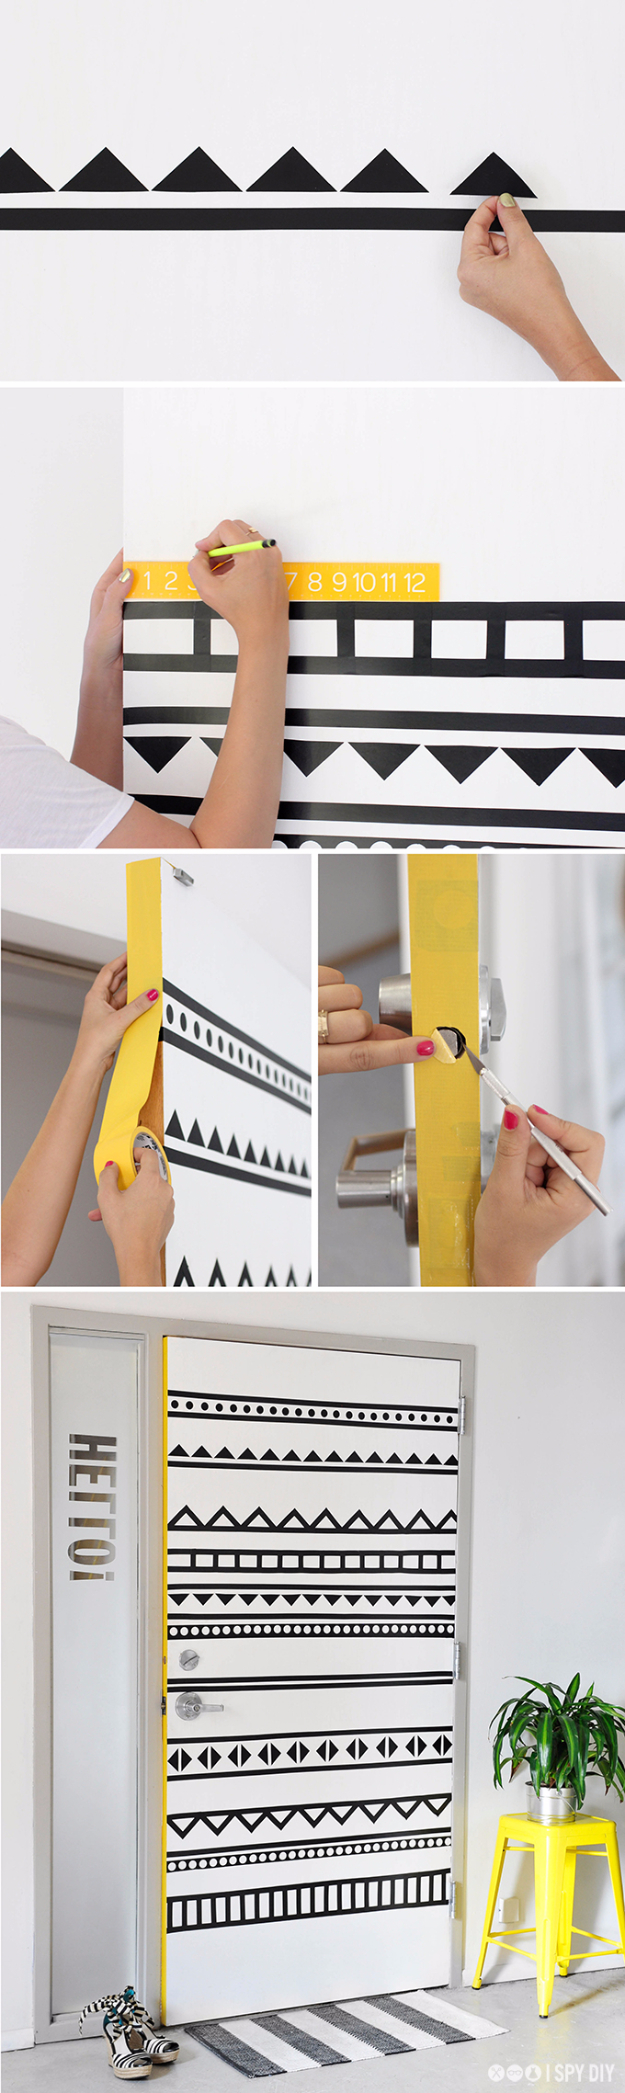 75 Cool DIY Projects For Teenagers Page 4 Of 4 DIY Joy